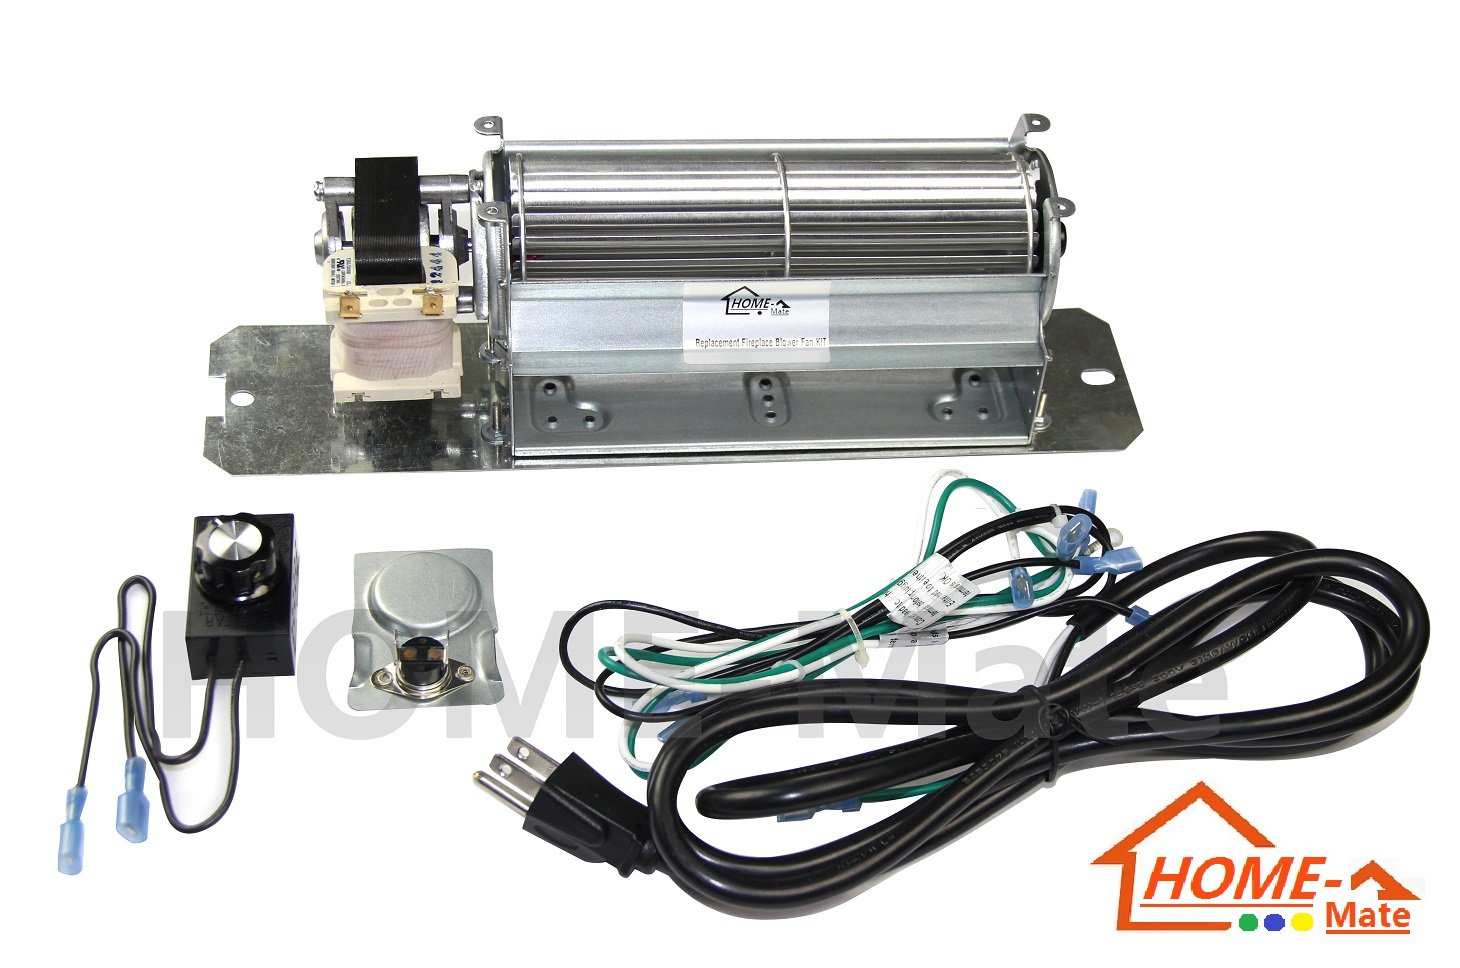 Hongso Gz550 Replacement Fireplace Blower Fan Kit For Continental Napoleon Ebay